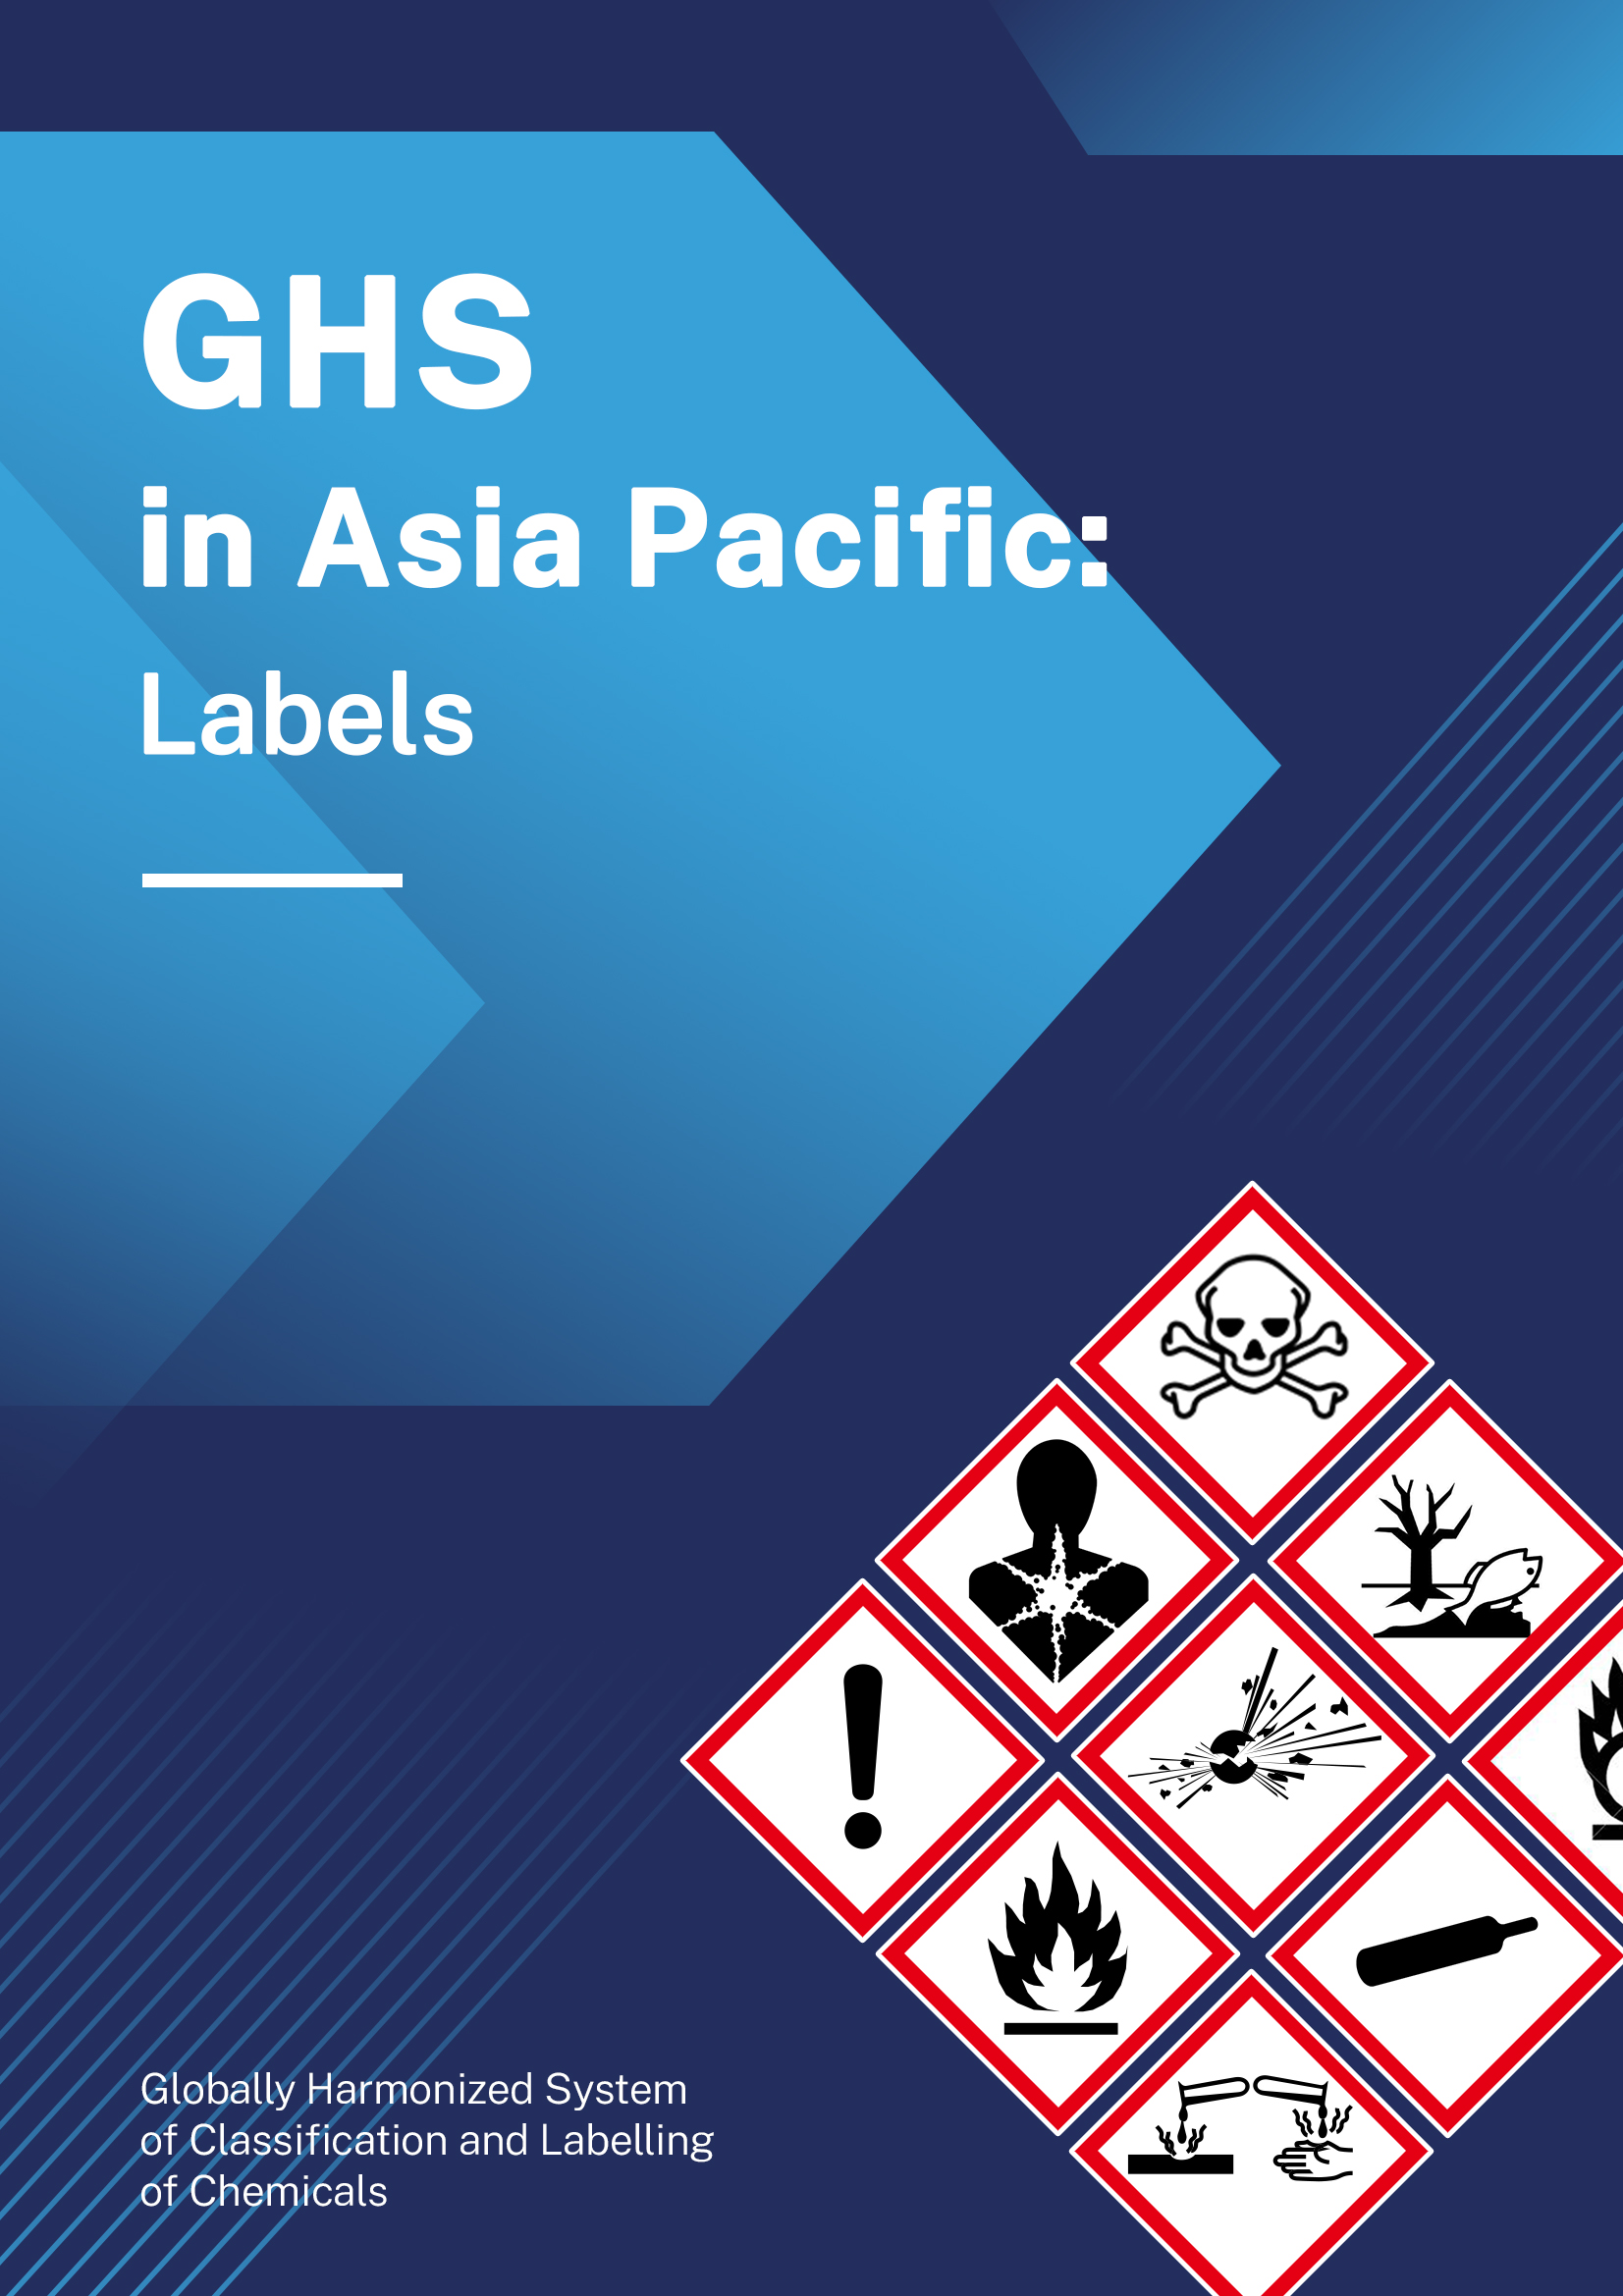 GHS in Asia Pacific: Labelling